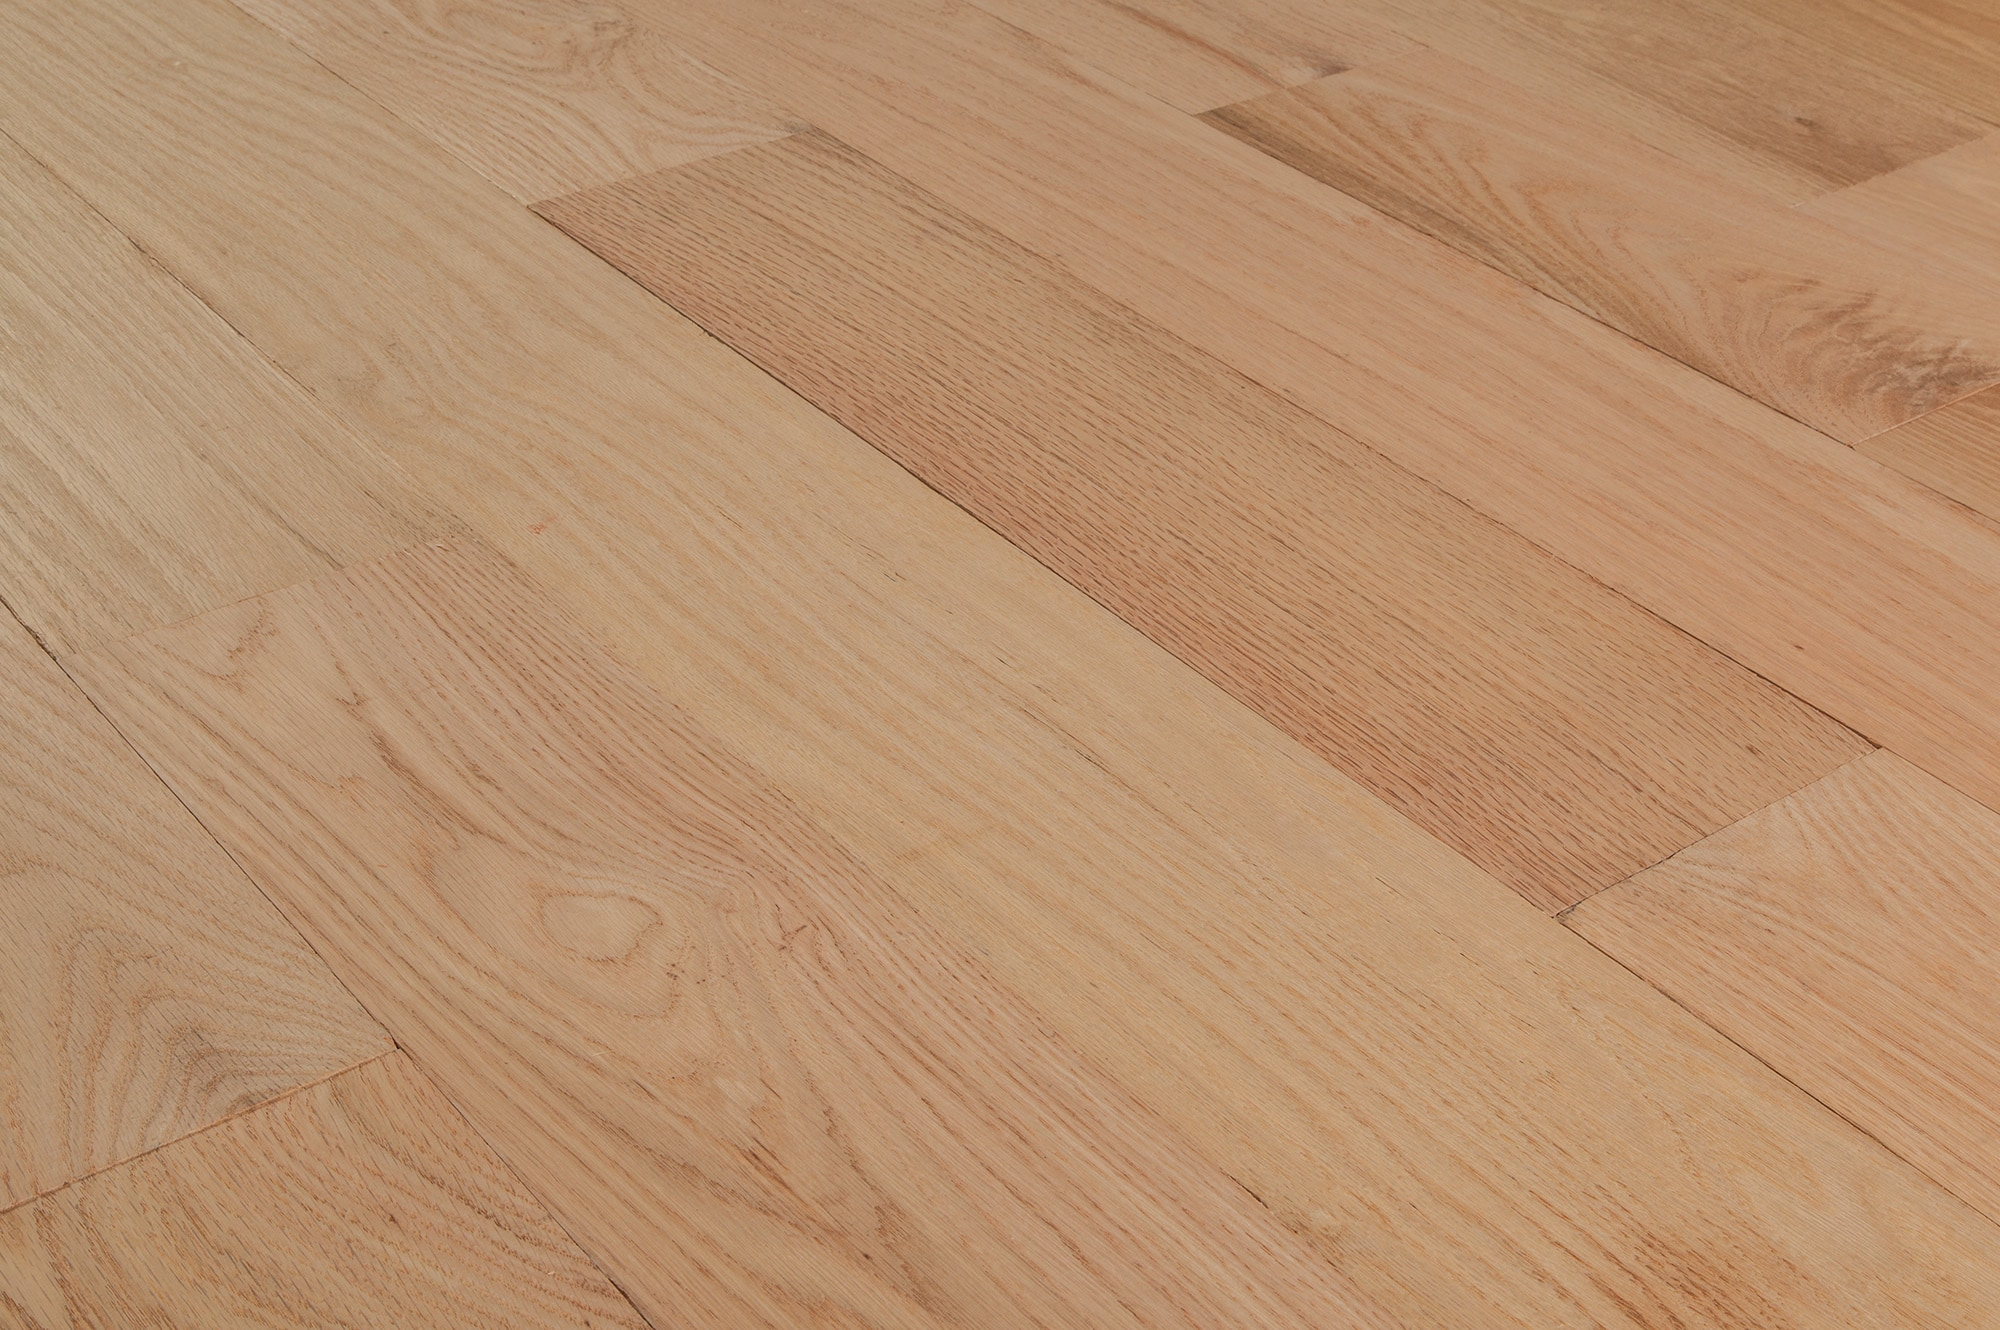 Tungston hardwood unfinished oak red oak select 7 for Unfinished oak flooring